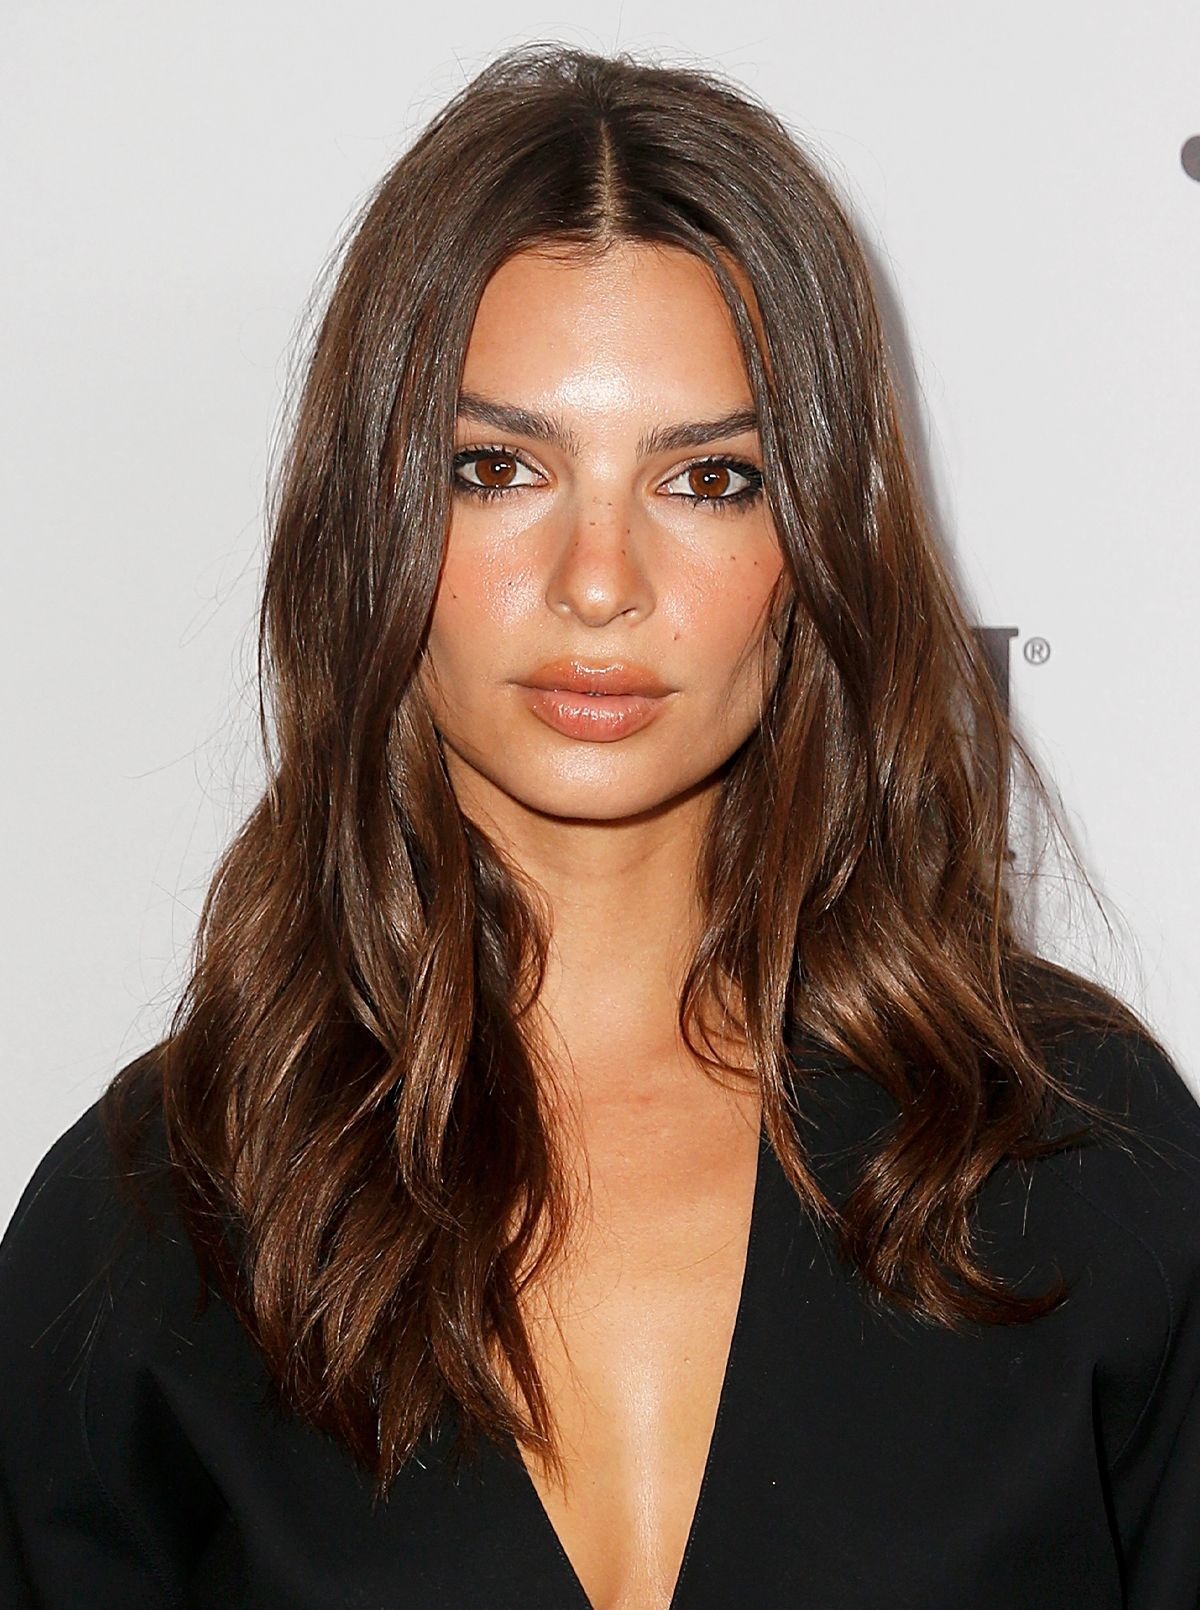 Here S What You Should And Shouldn T Do To Your Facedepending On Your Age Vampire Facial Emily Ratajkowski Brightening Face Cream